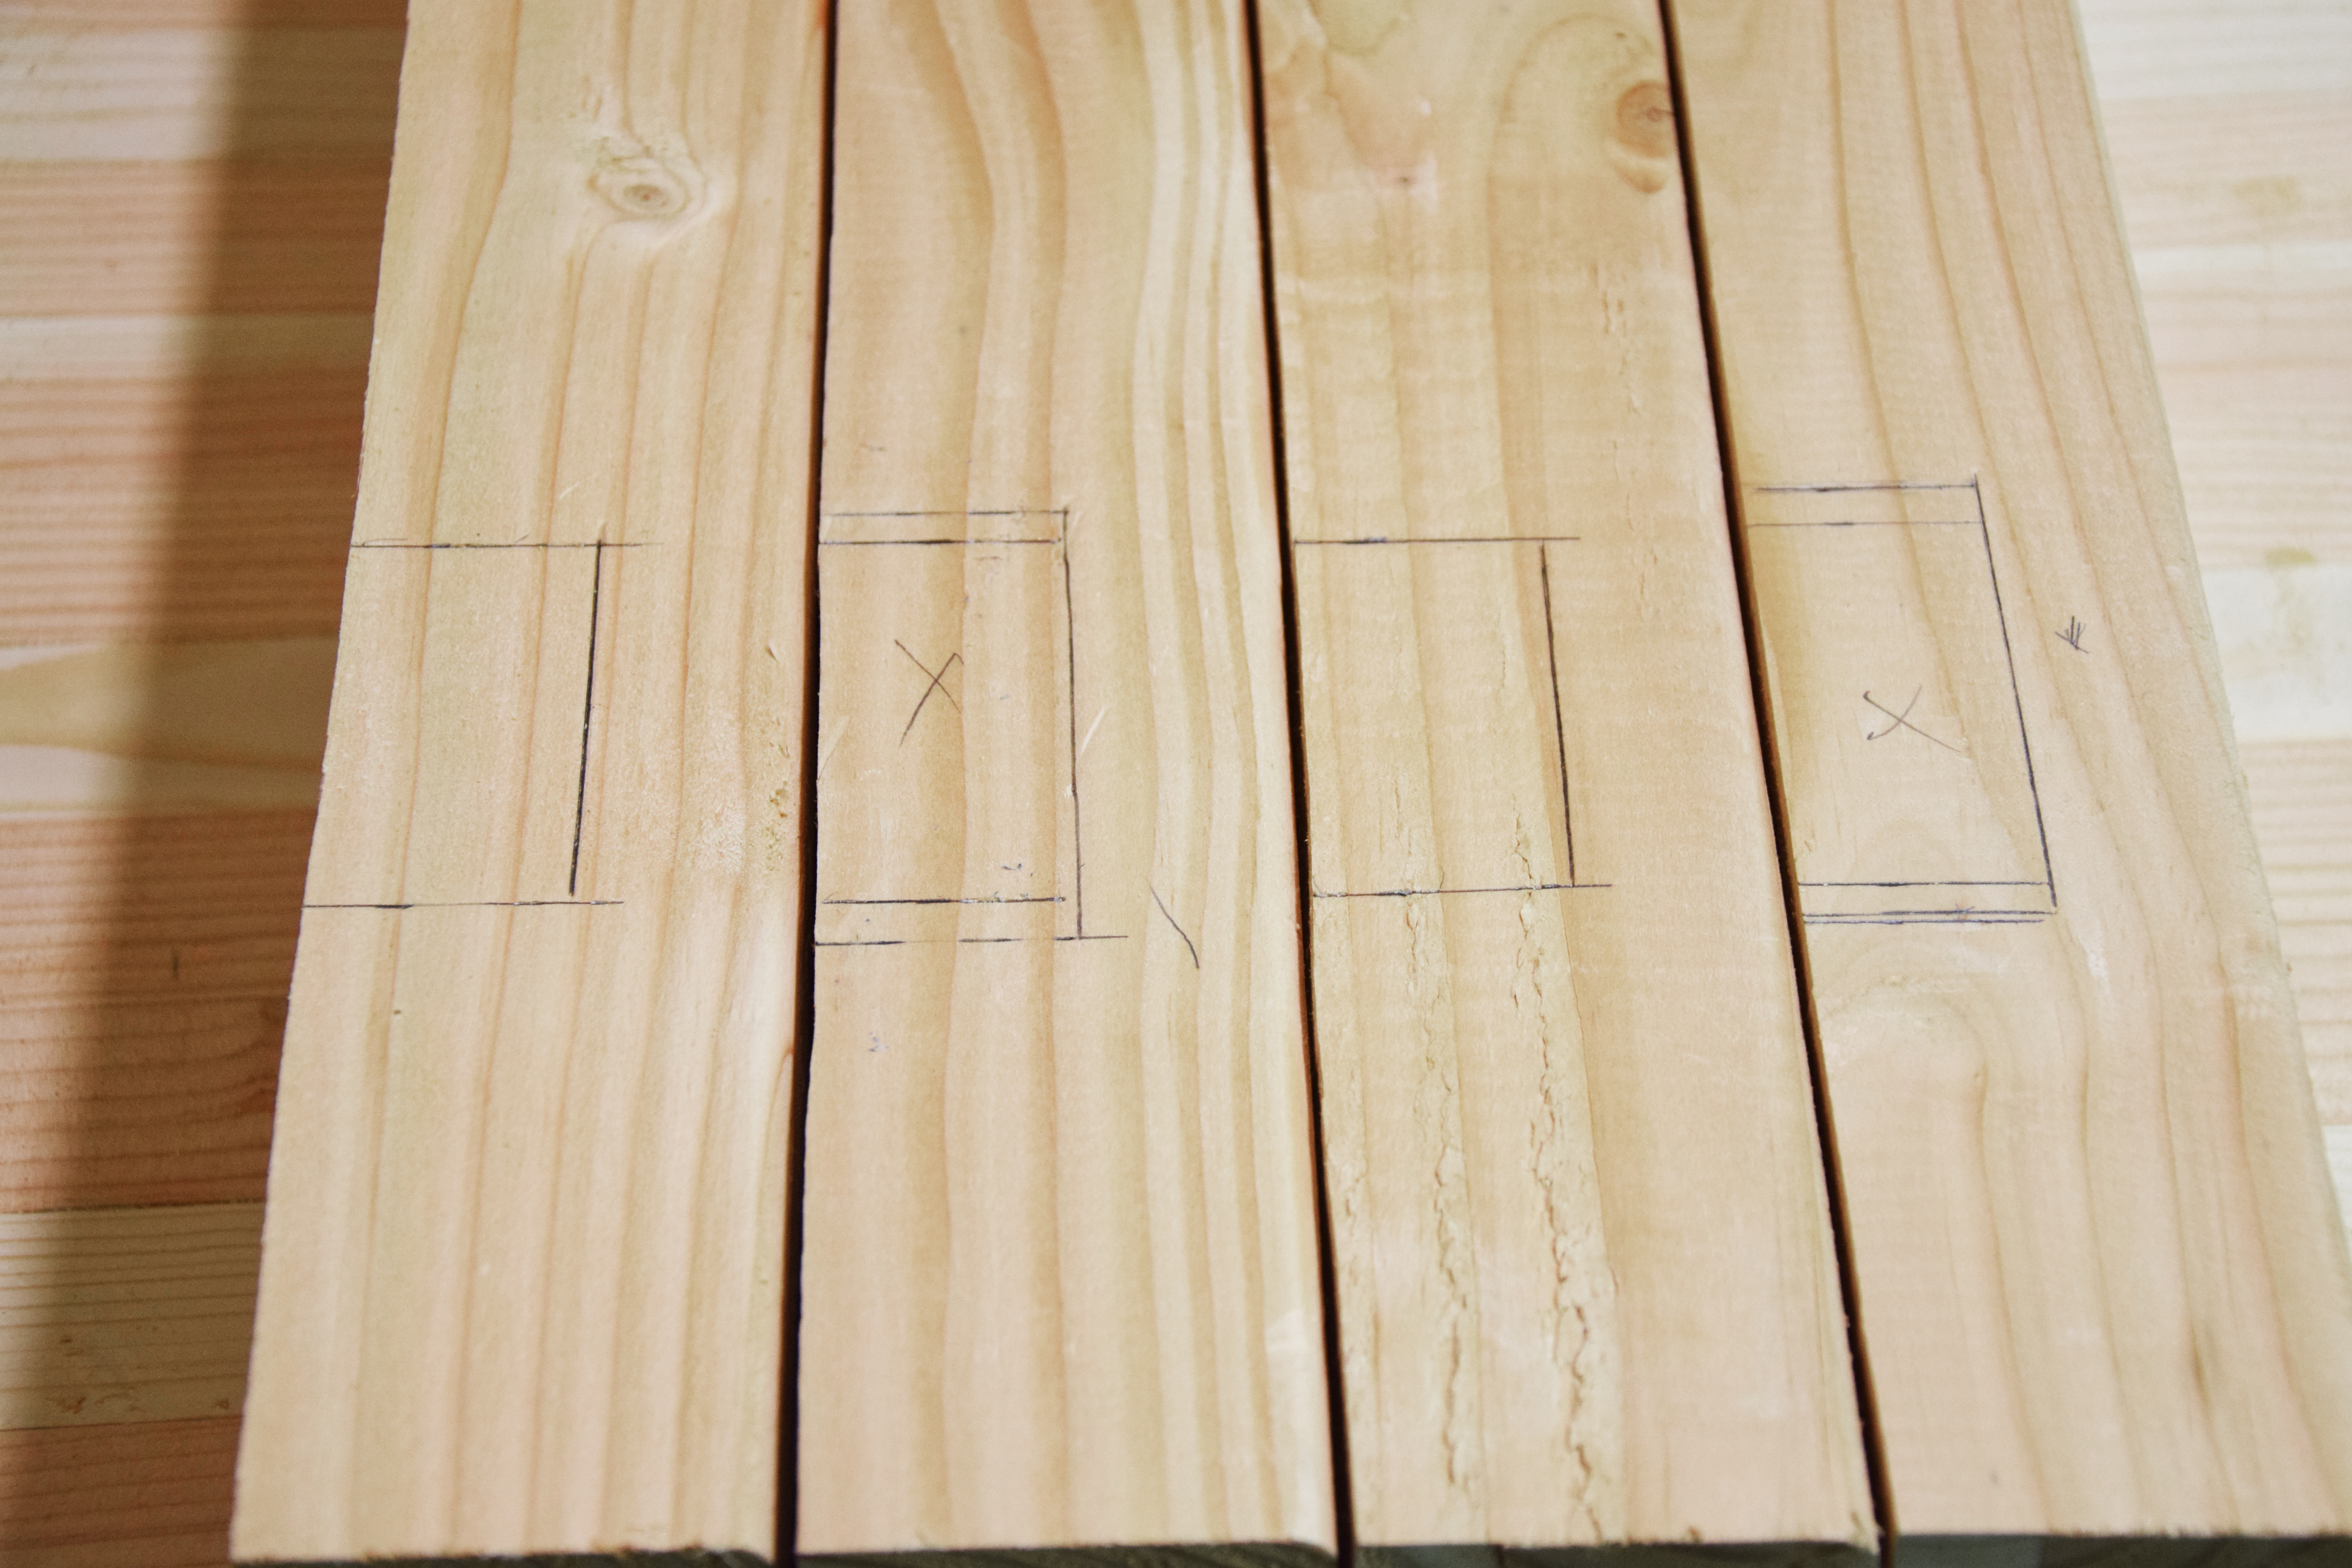 Picture of Mark and Cut Mortise